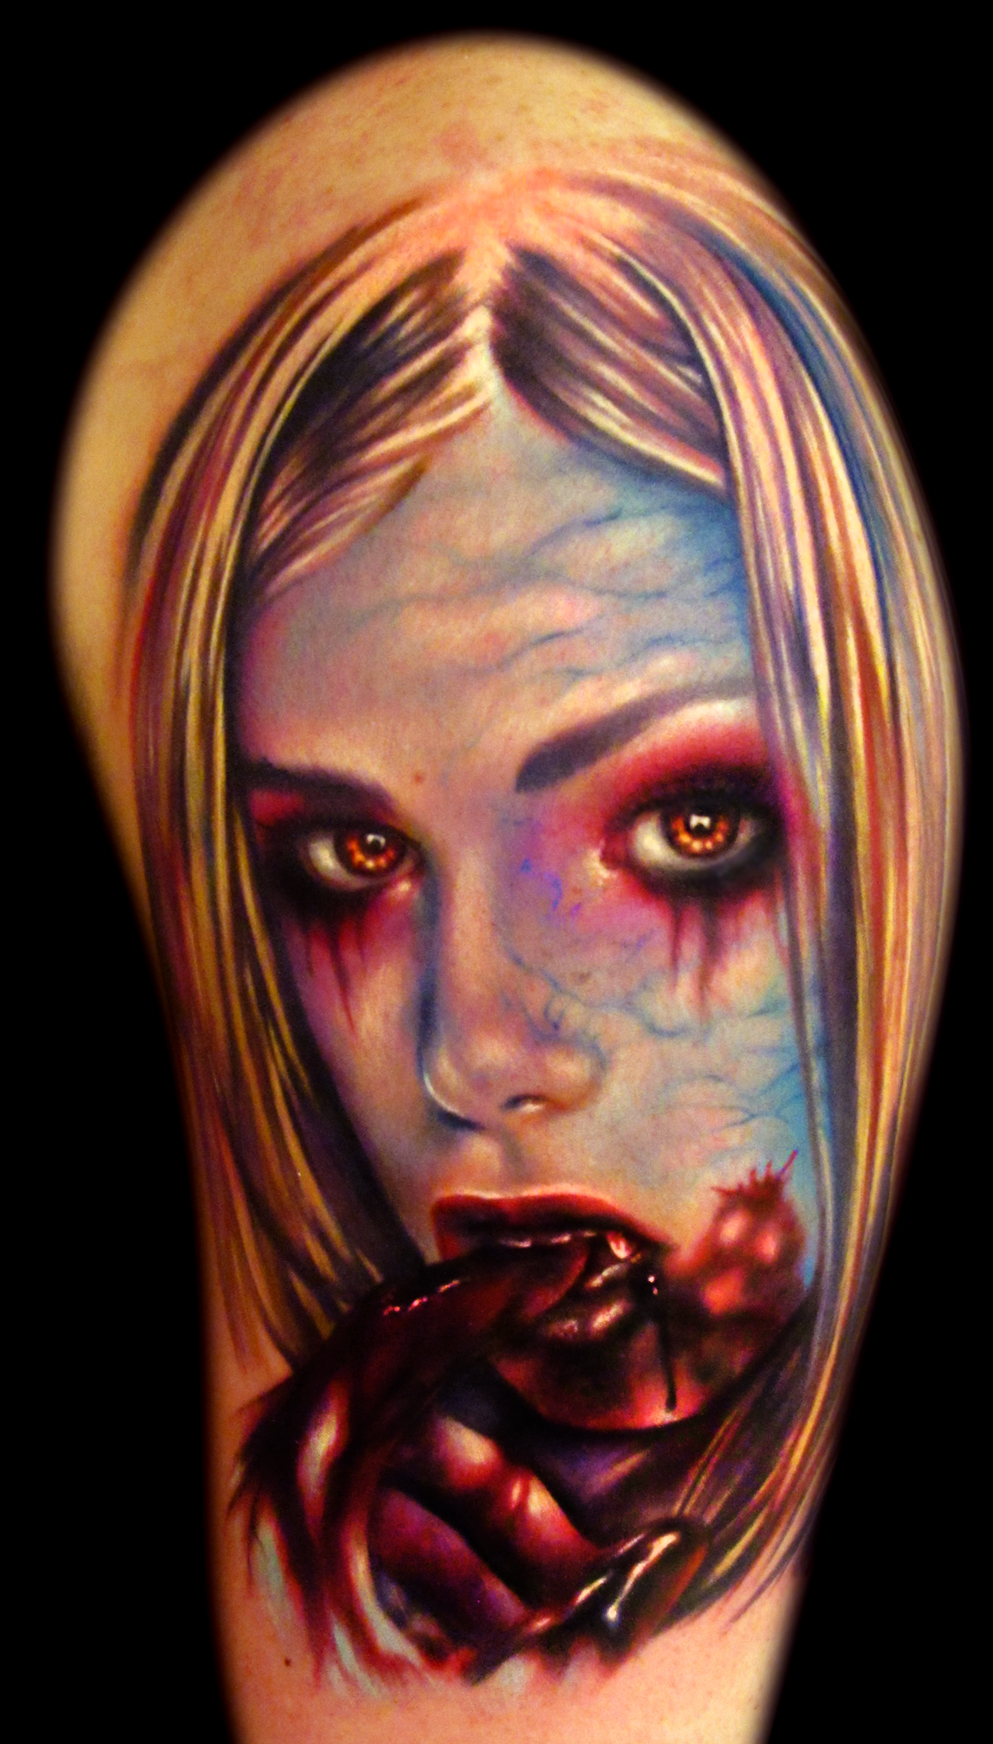 Vampire Sexy Hand Blood Portrait Tattoo 300res.jpg